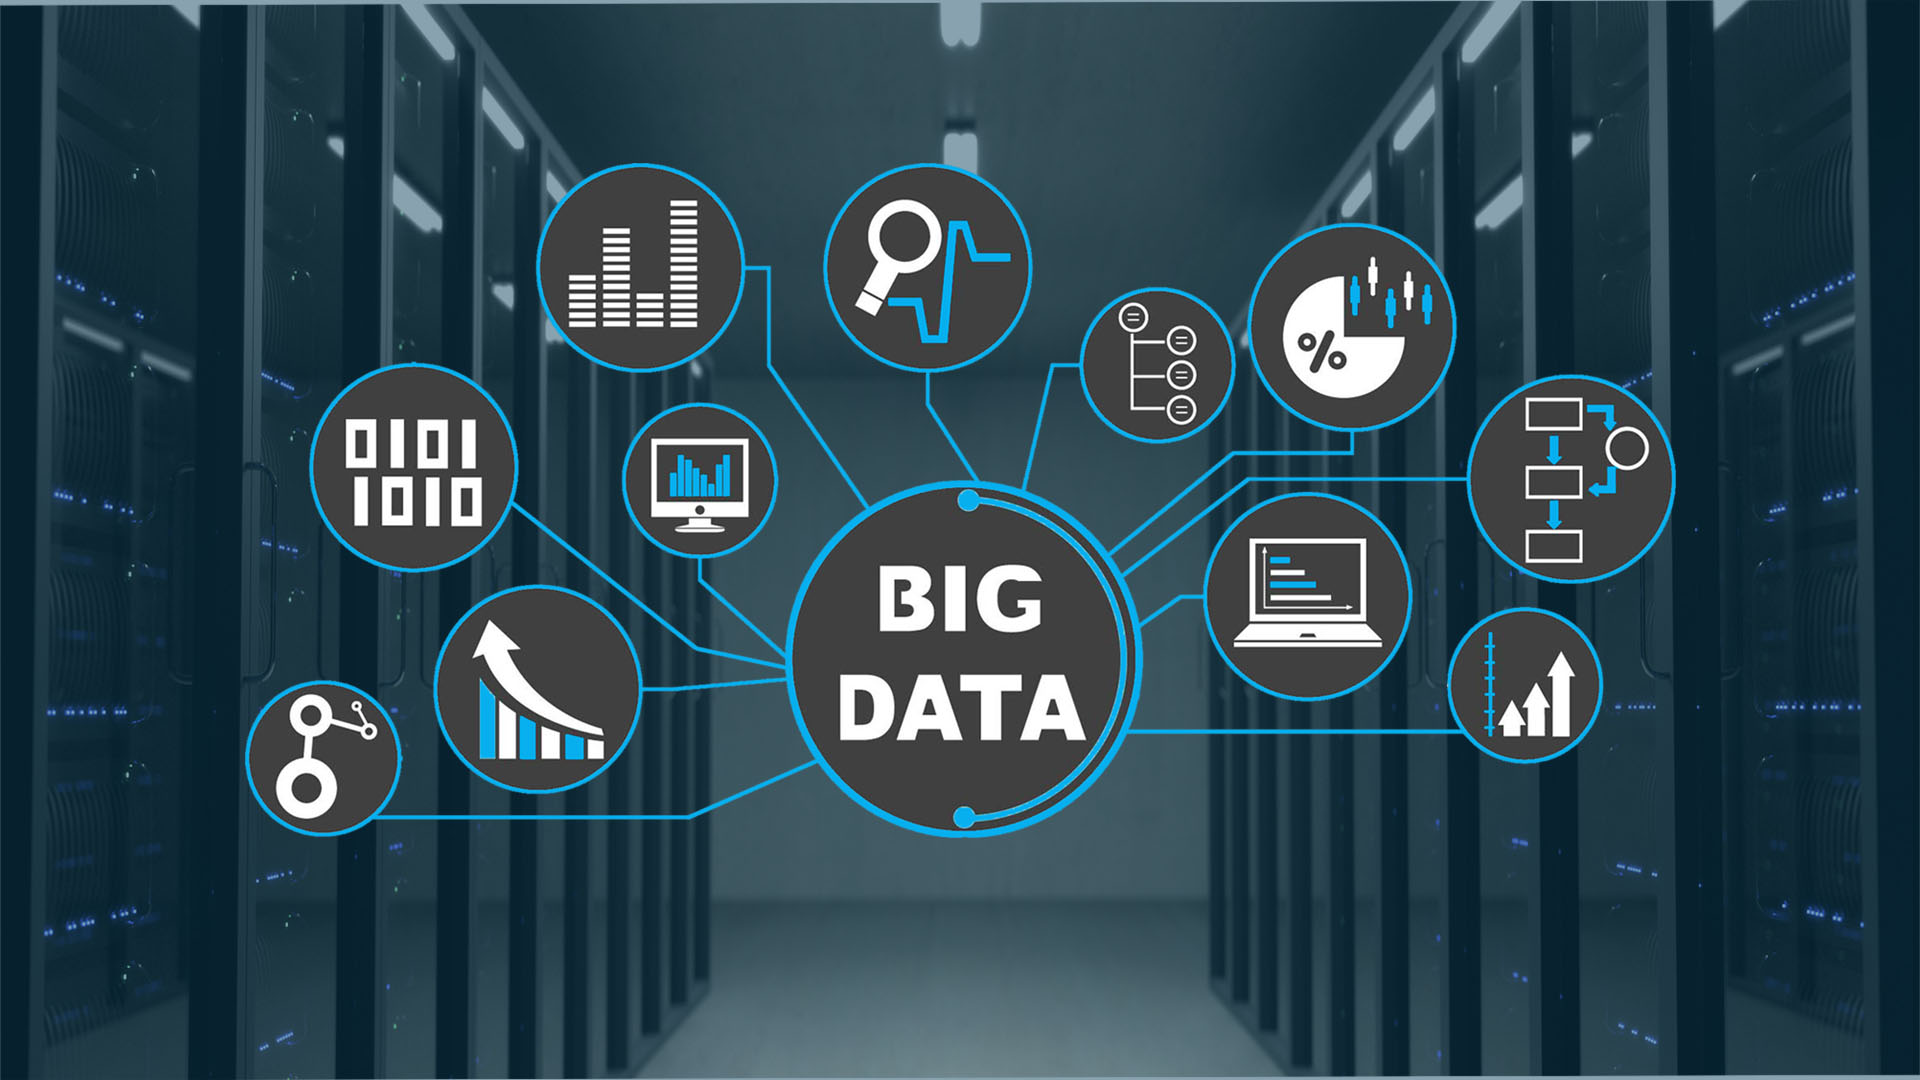 6 Prediction For The 203 Billion Big Data Market Iqvis Inc